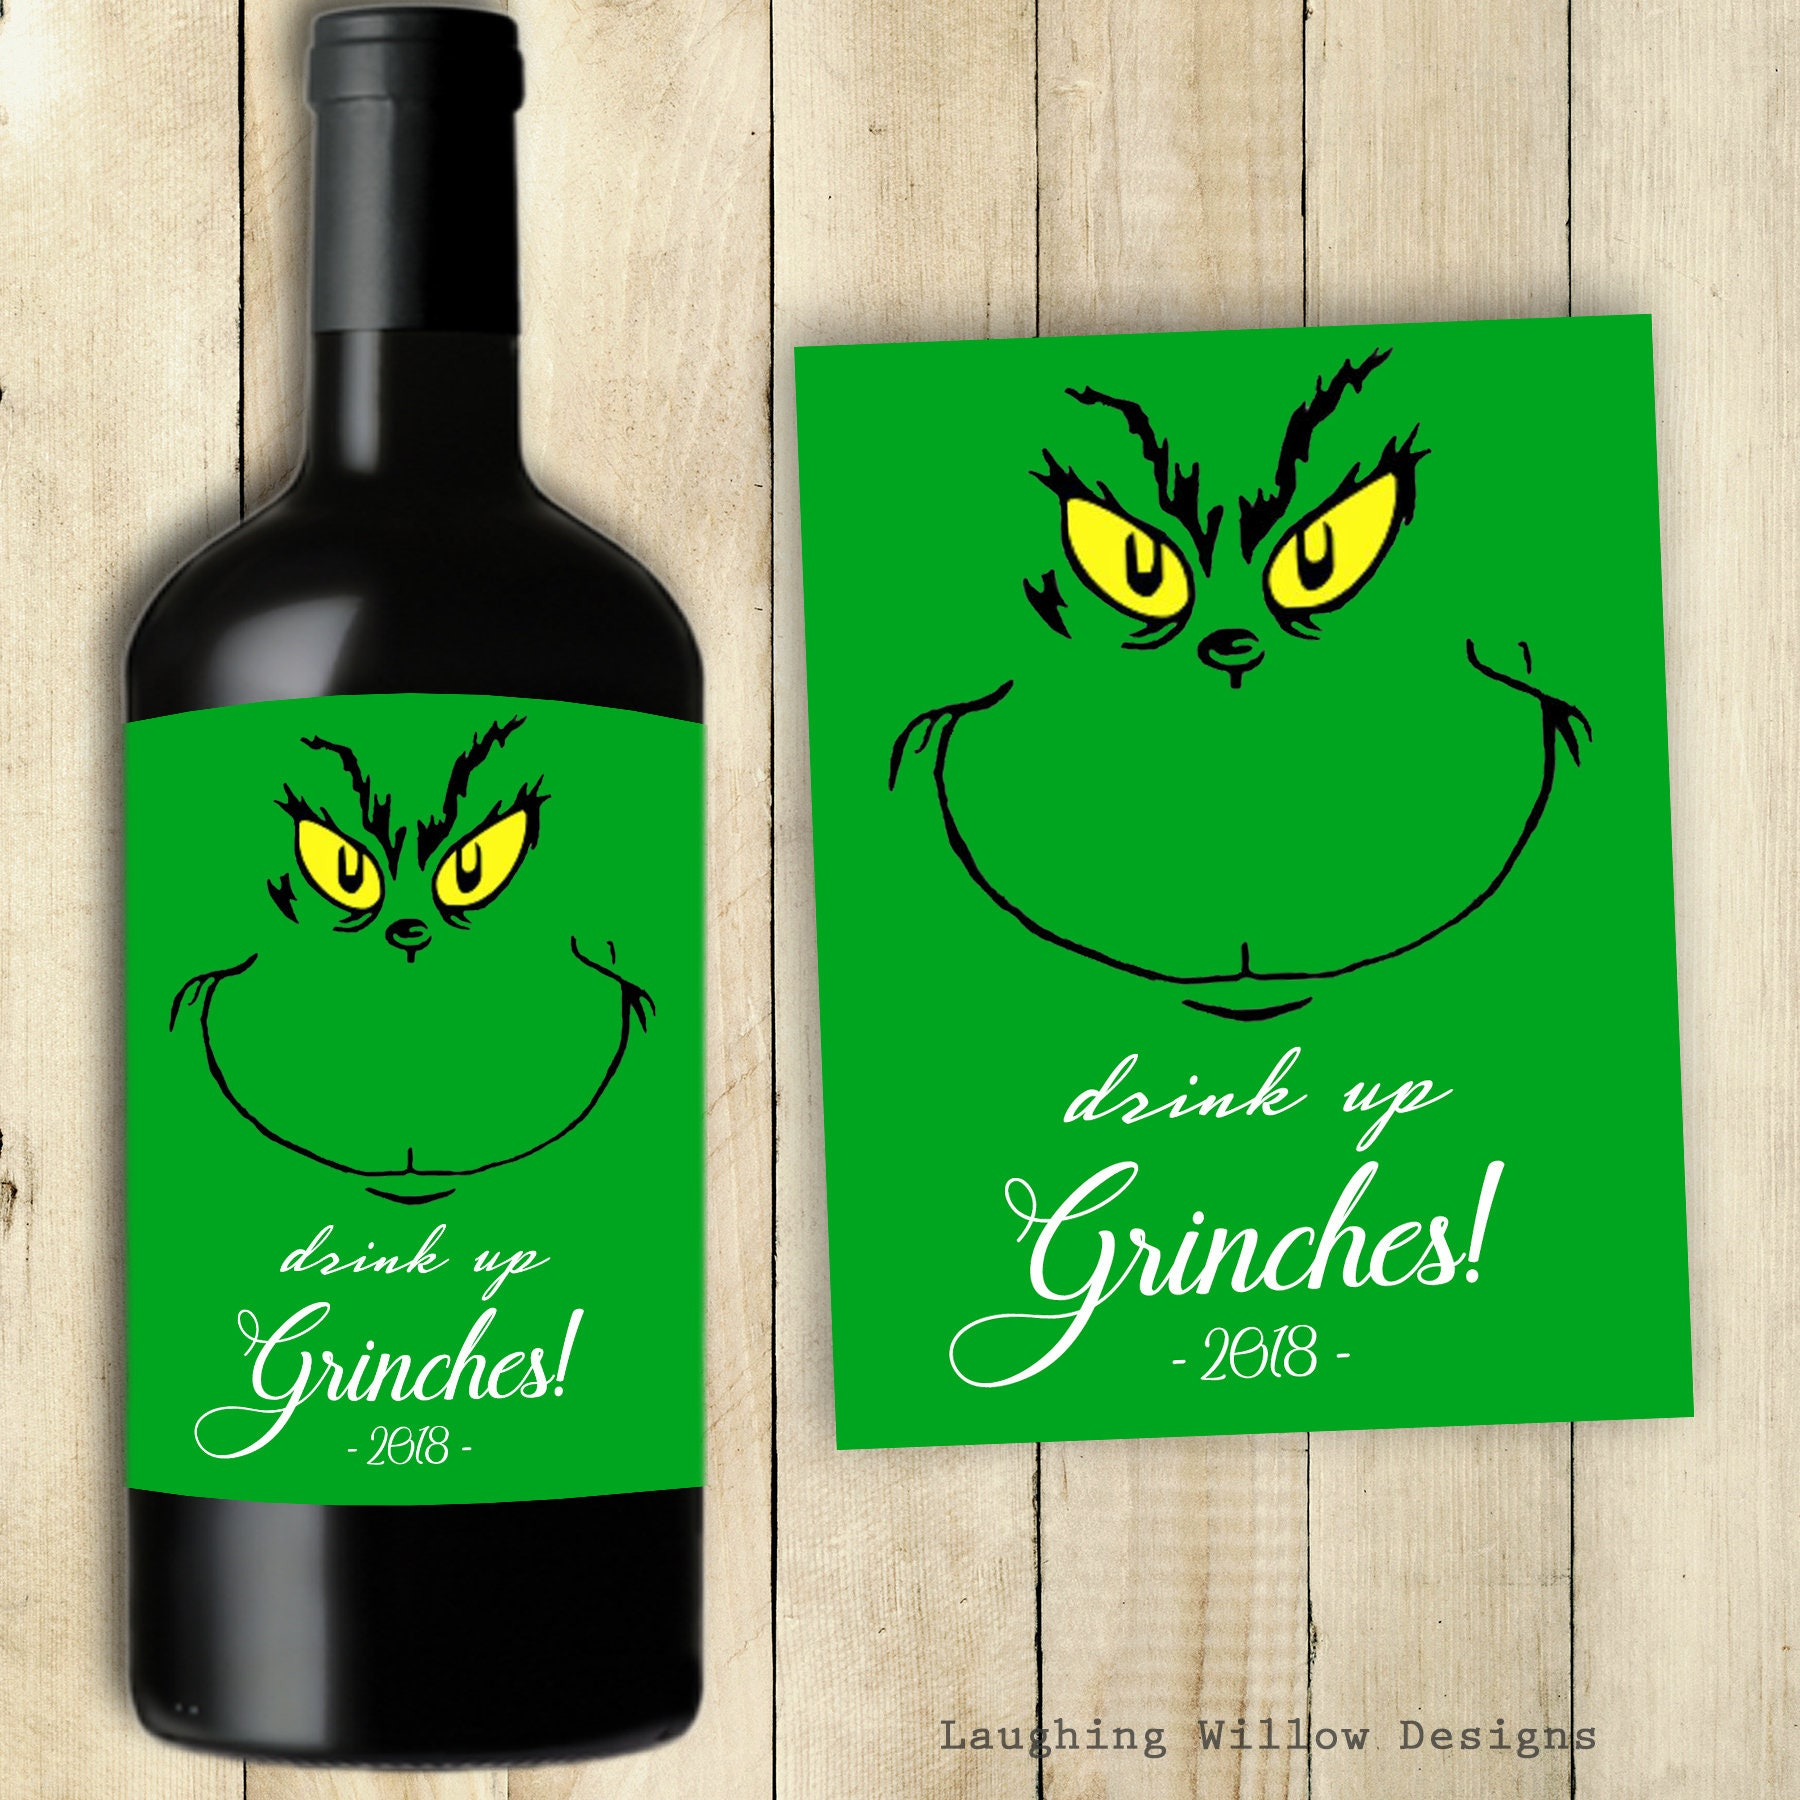 Grinch Wine Label Drink Up Grinches Merry Christmas Grinch